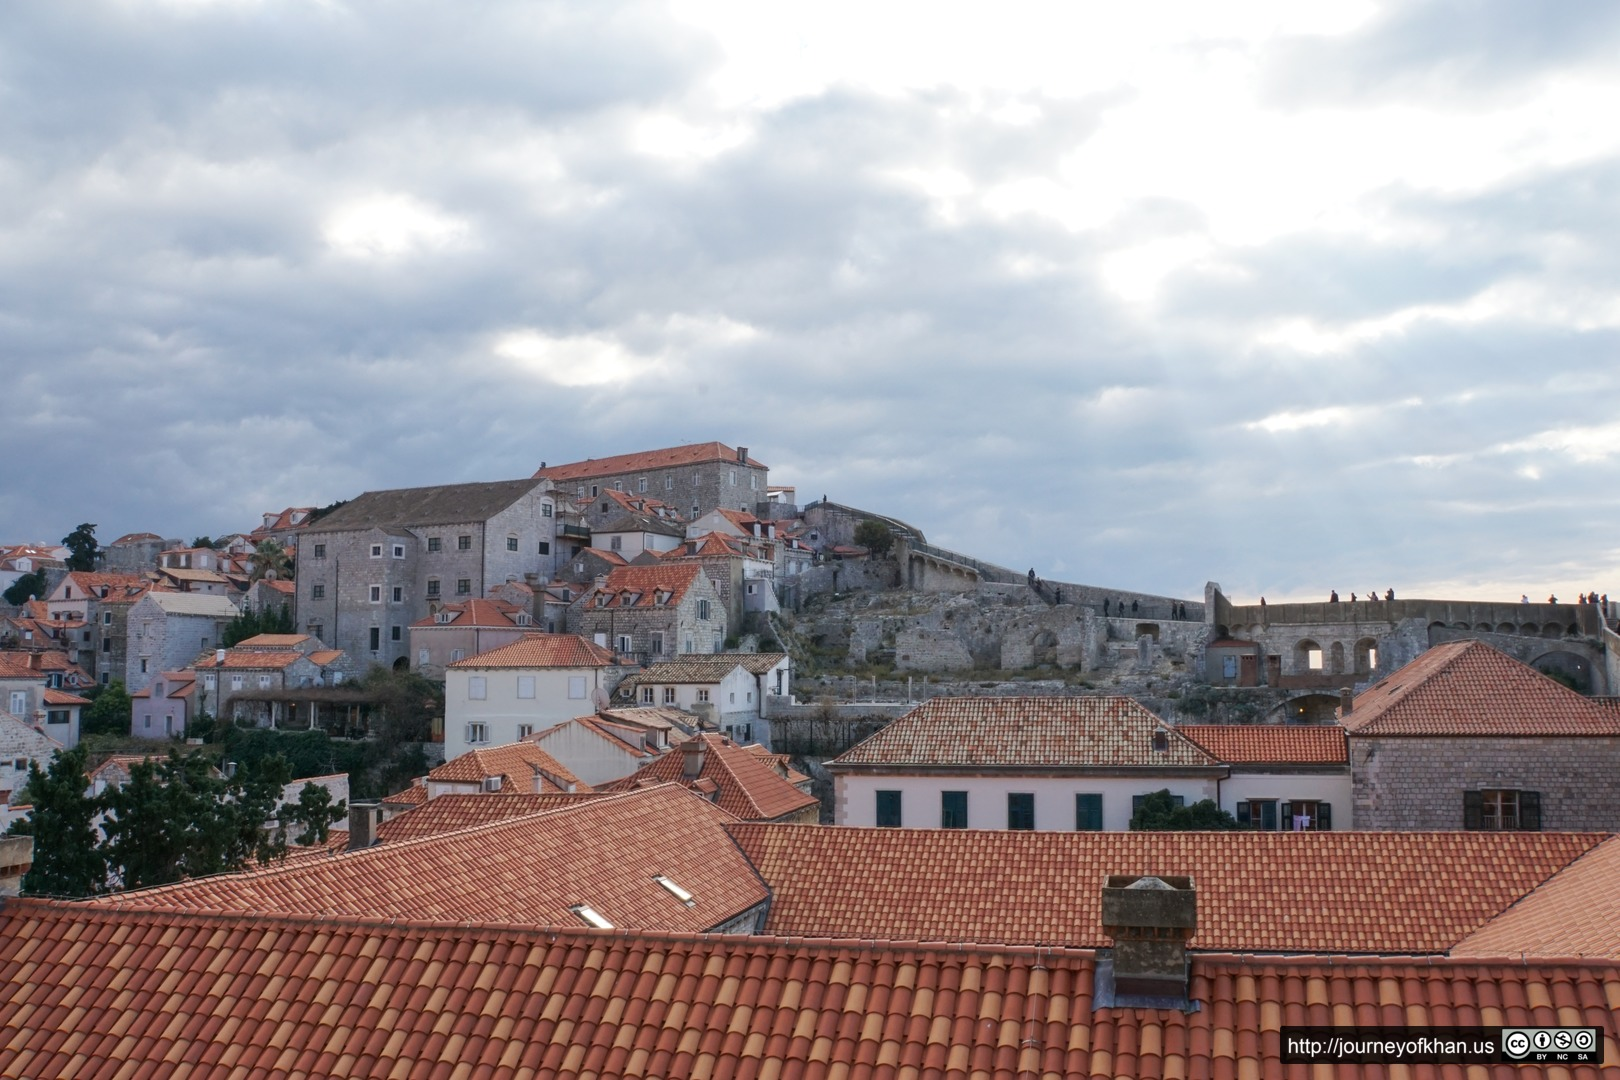 Roofs and Walls